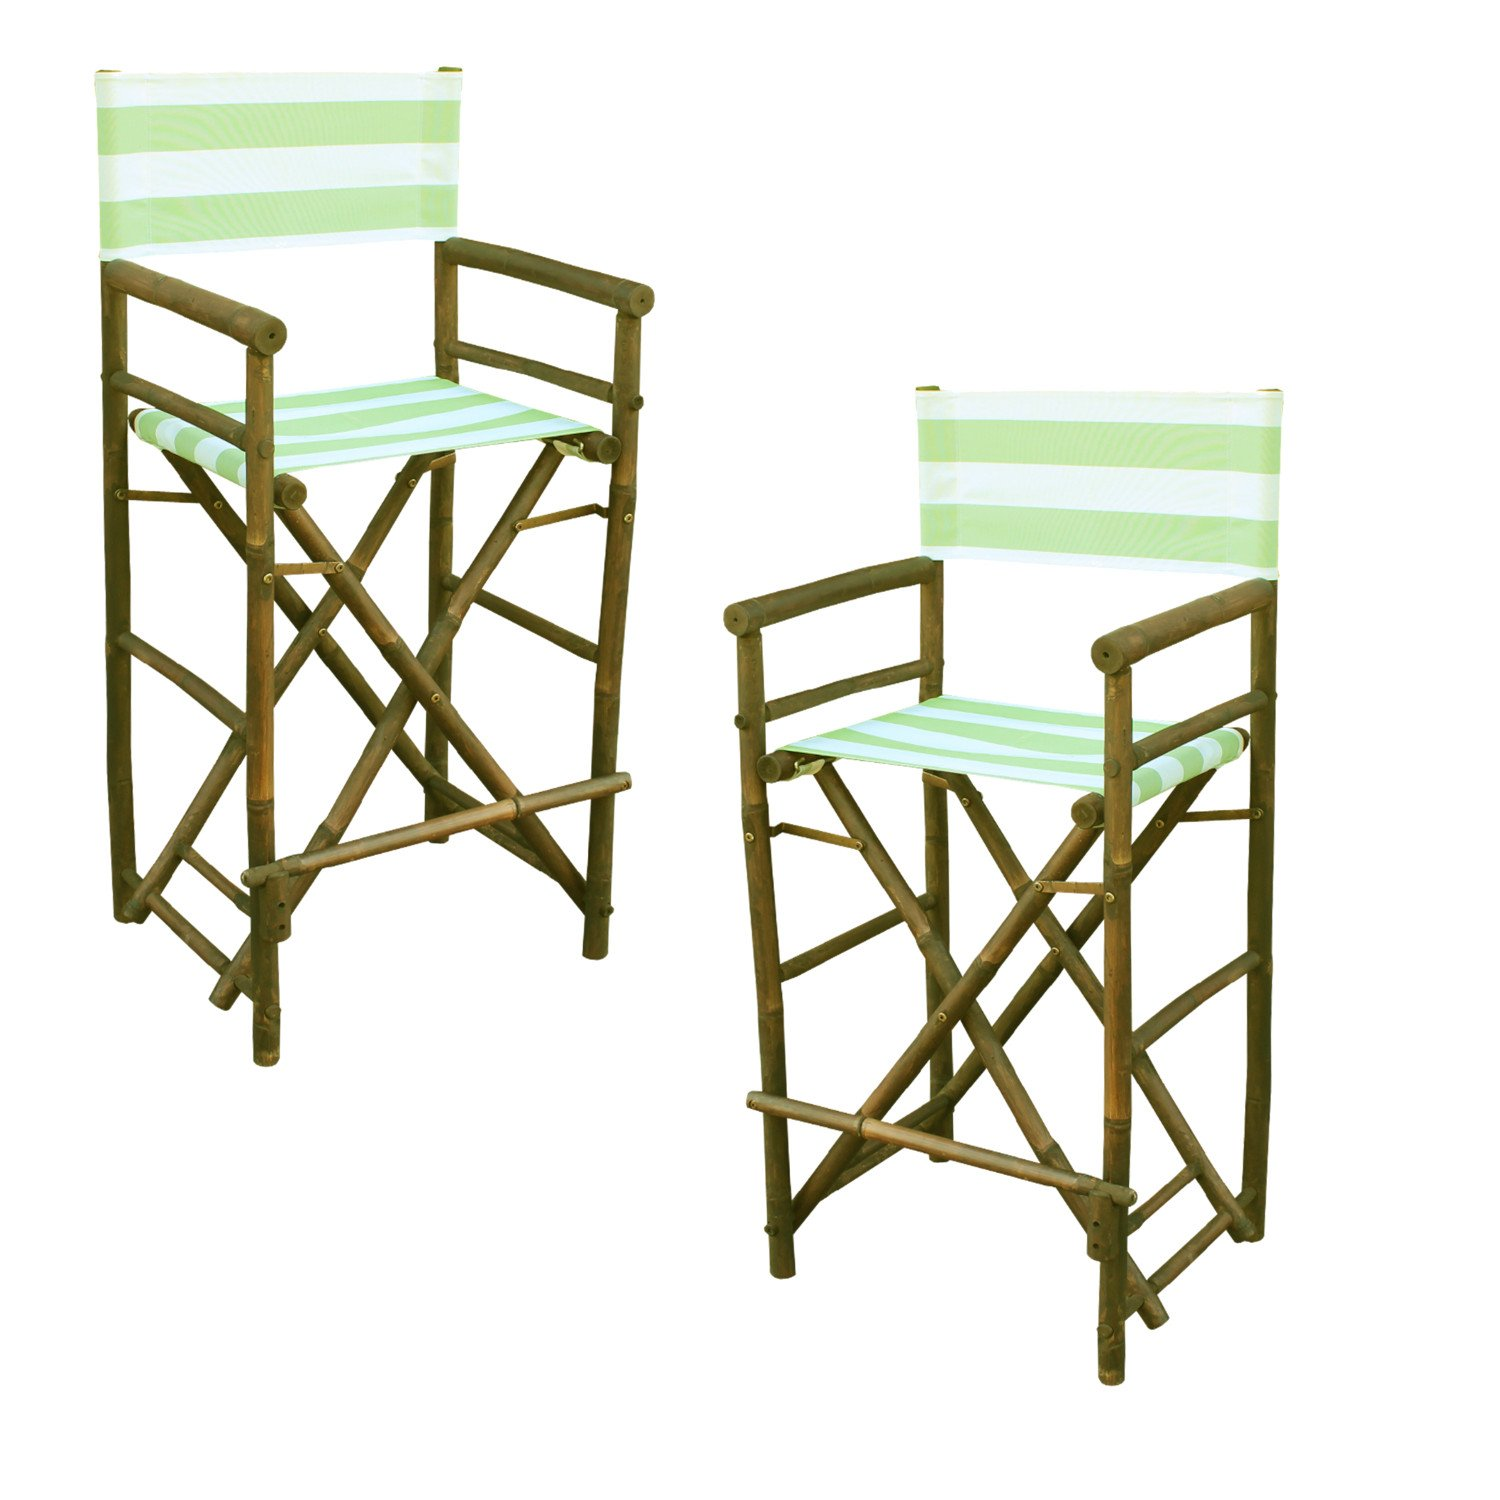 Zew Hand Crafted Tall Foldable Bamboo Director's Chair with Treated Canvas, Set of 2 Chairs, Espresso Finish, Striped Celadon